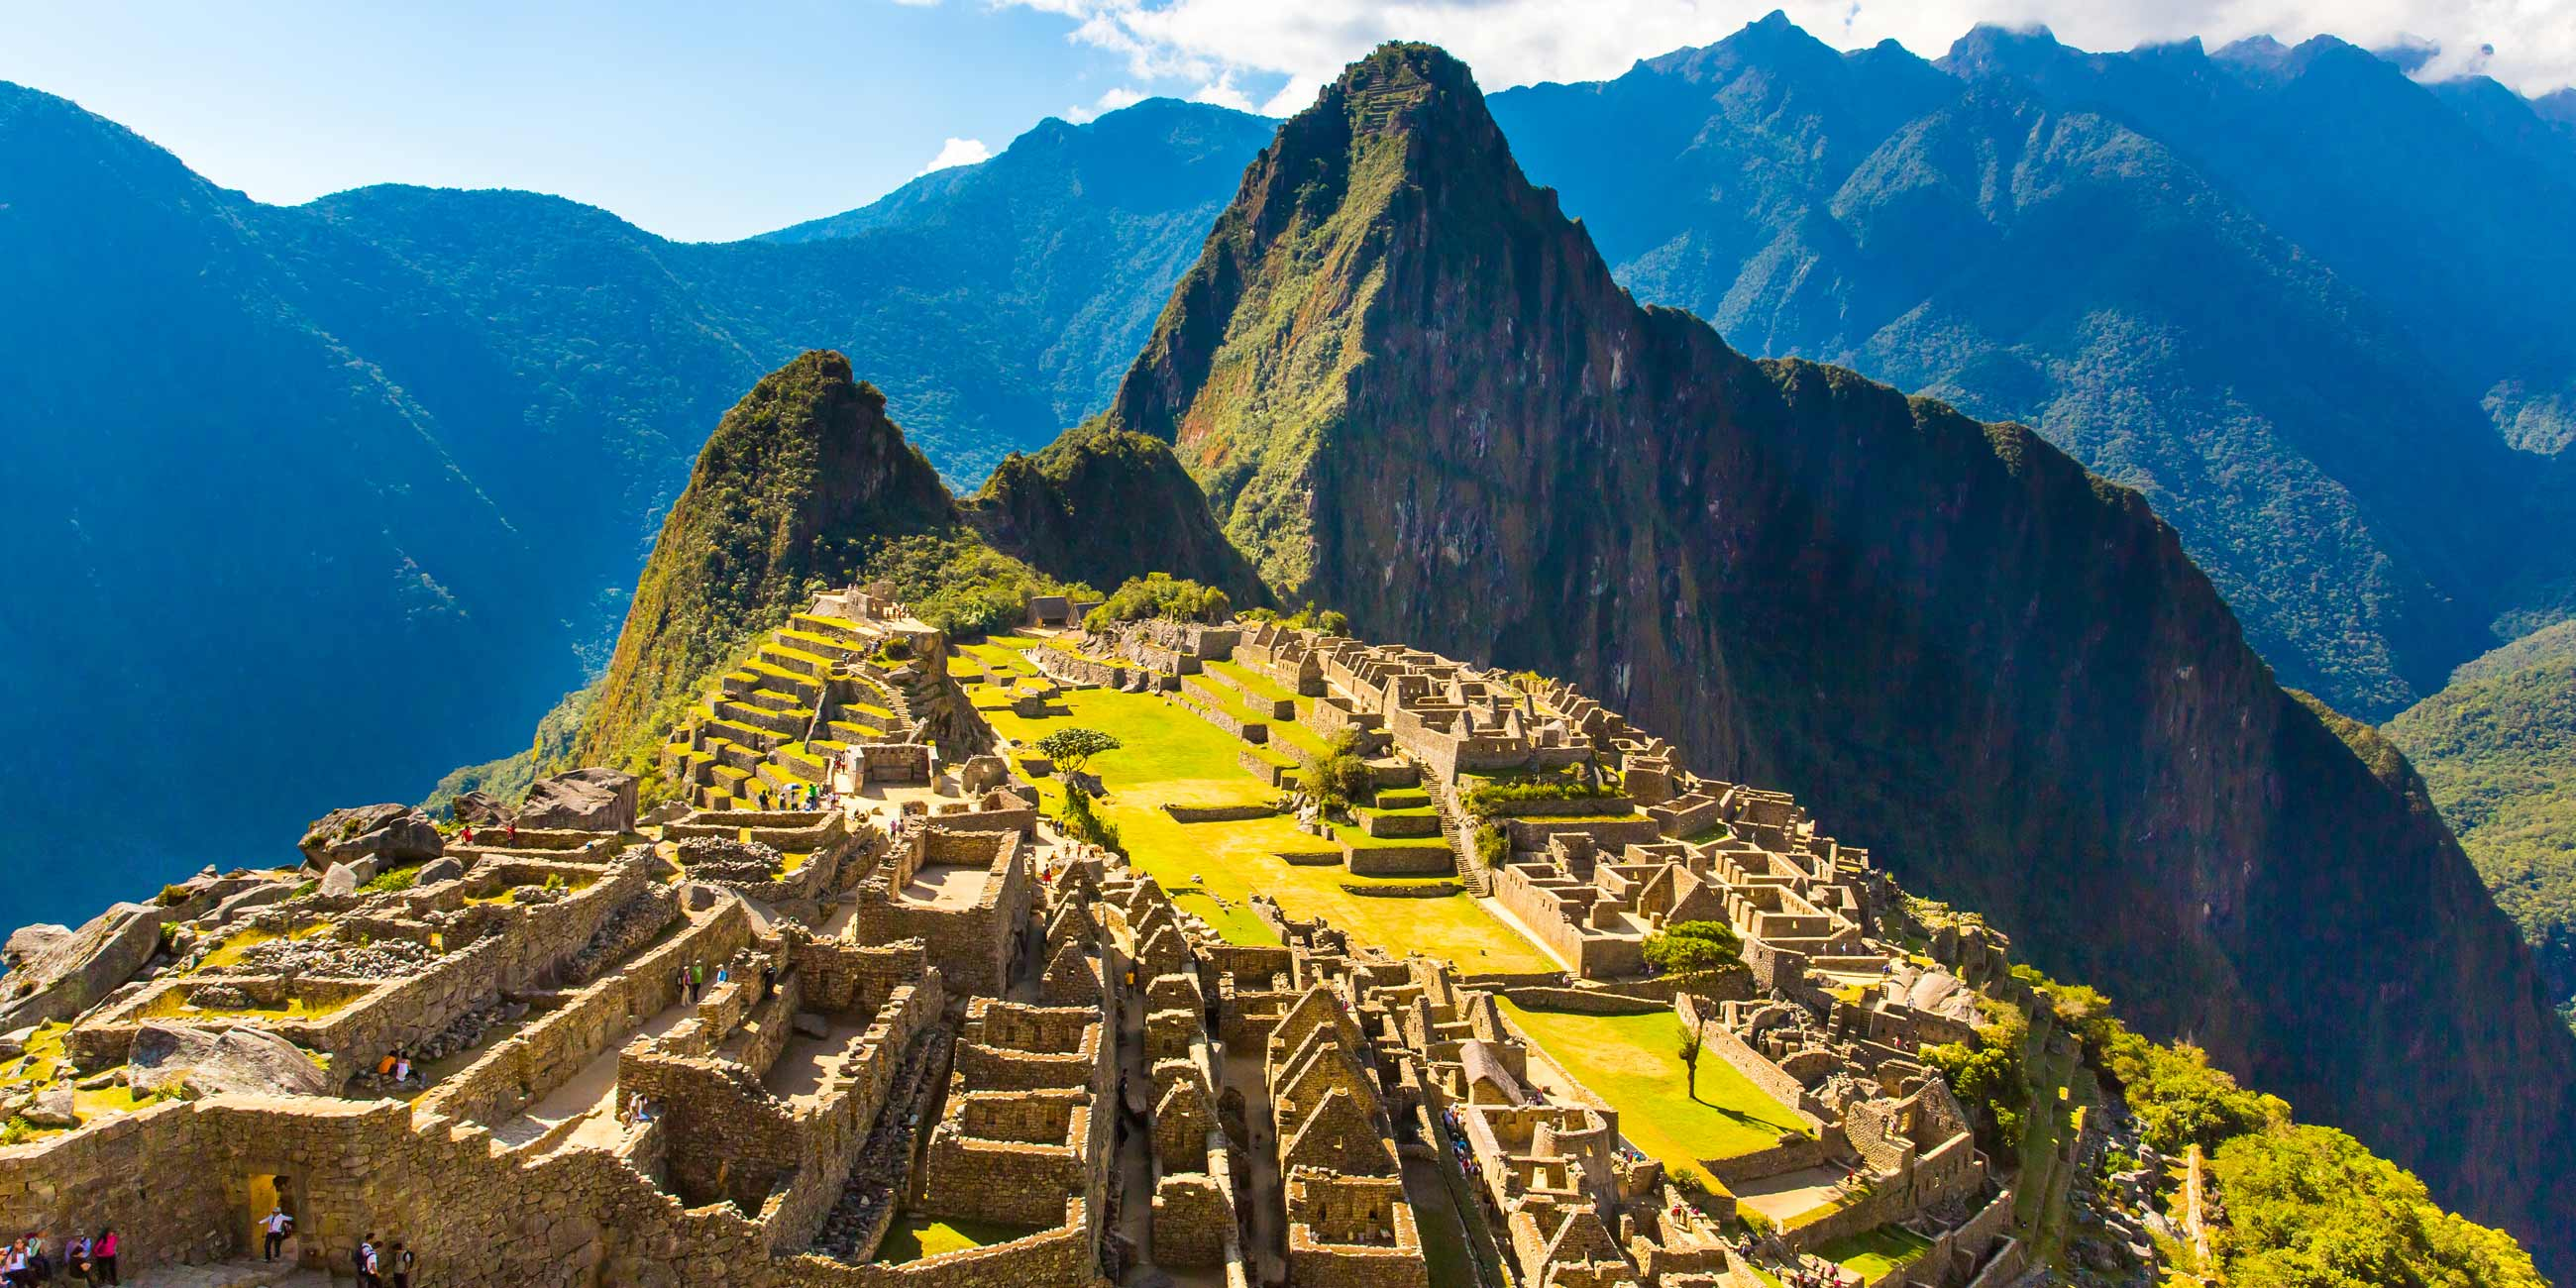 Pictures of the inca empire Snapseed on PC Download Install - Best Photo Editor